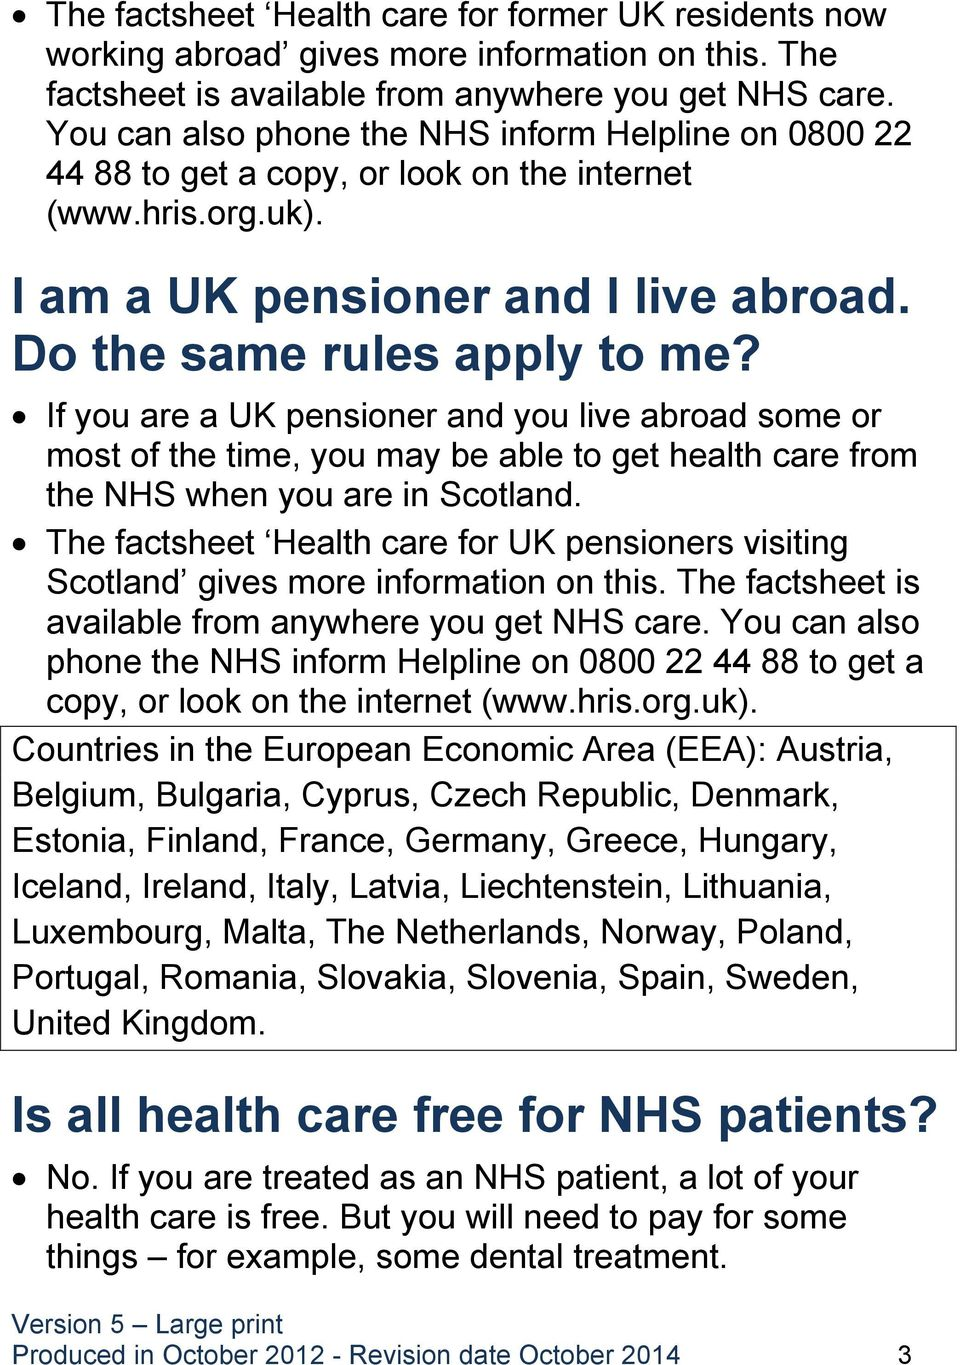 If you are a UK pensioner and you live abroad some or most of the time, you may be able to get health care from the NHS when you are in Scotland.